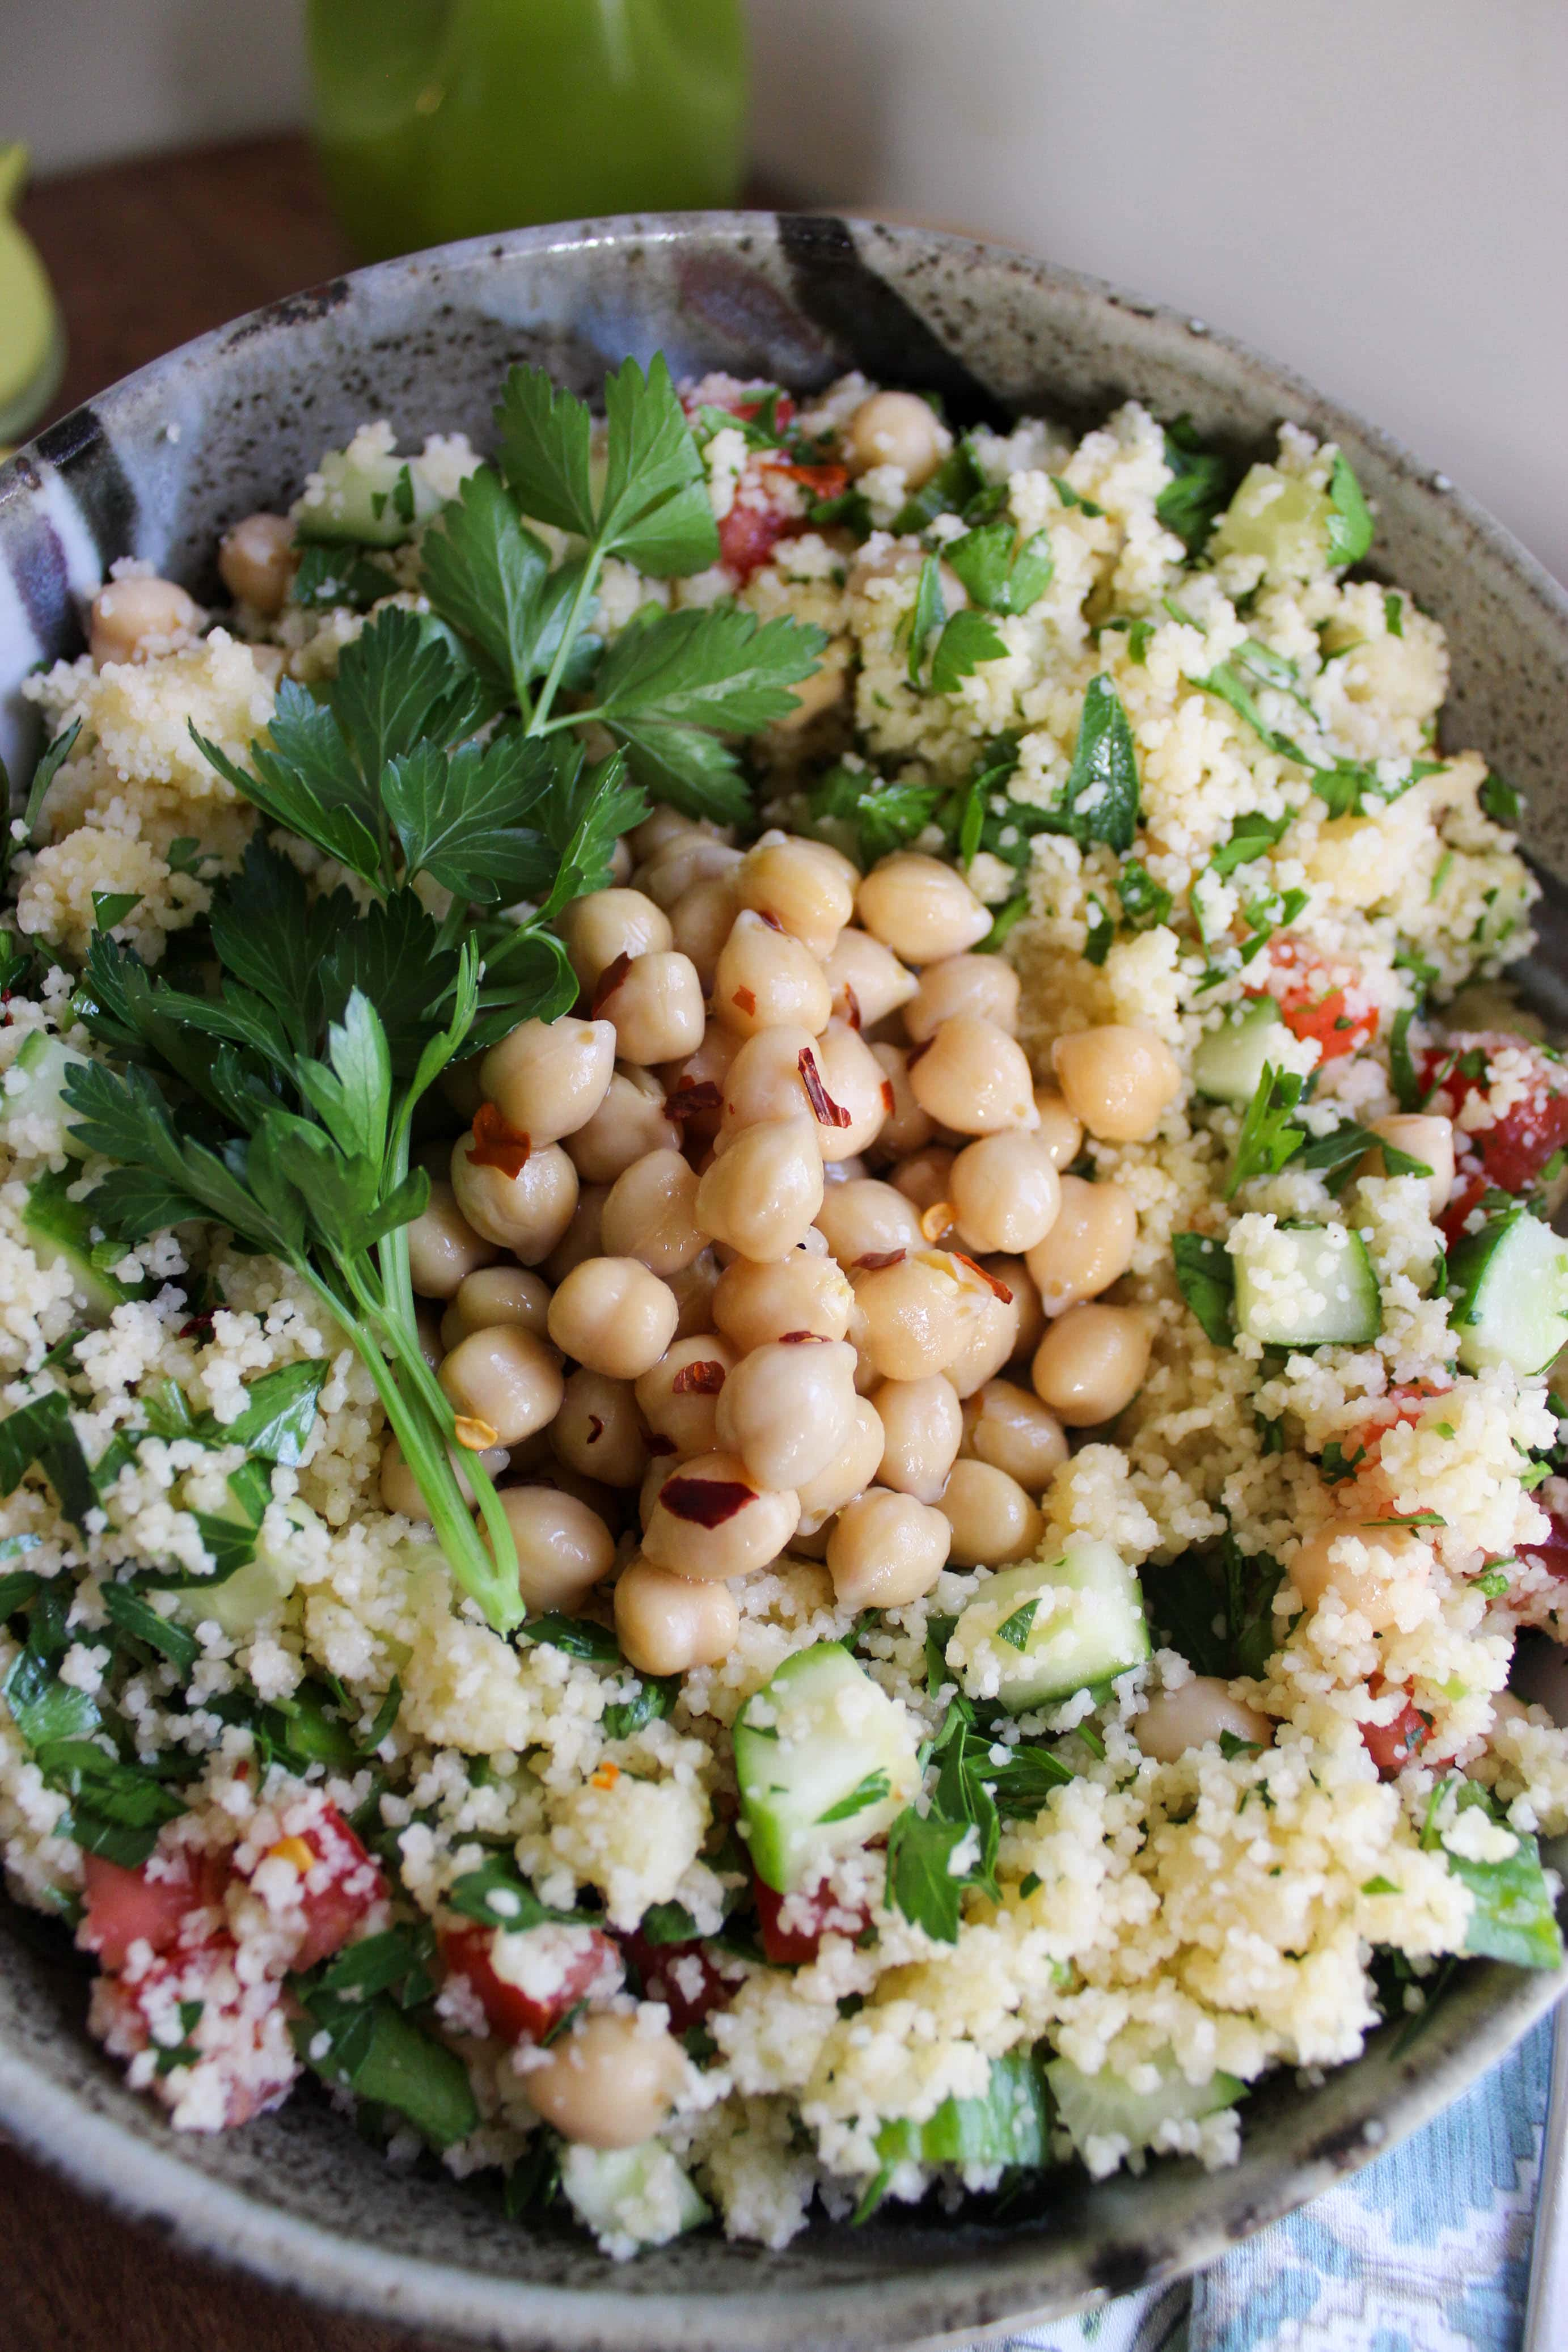 top view of couscous salad topped with parsley and marinated garbanzo beans